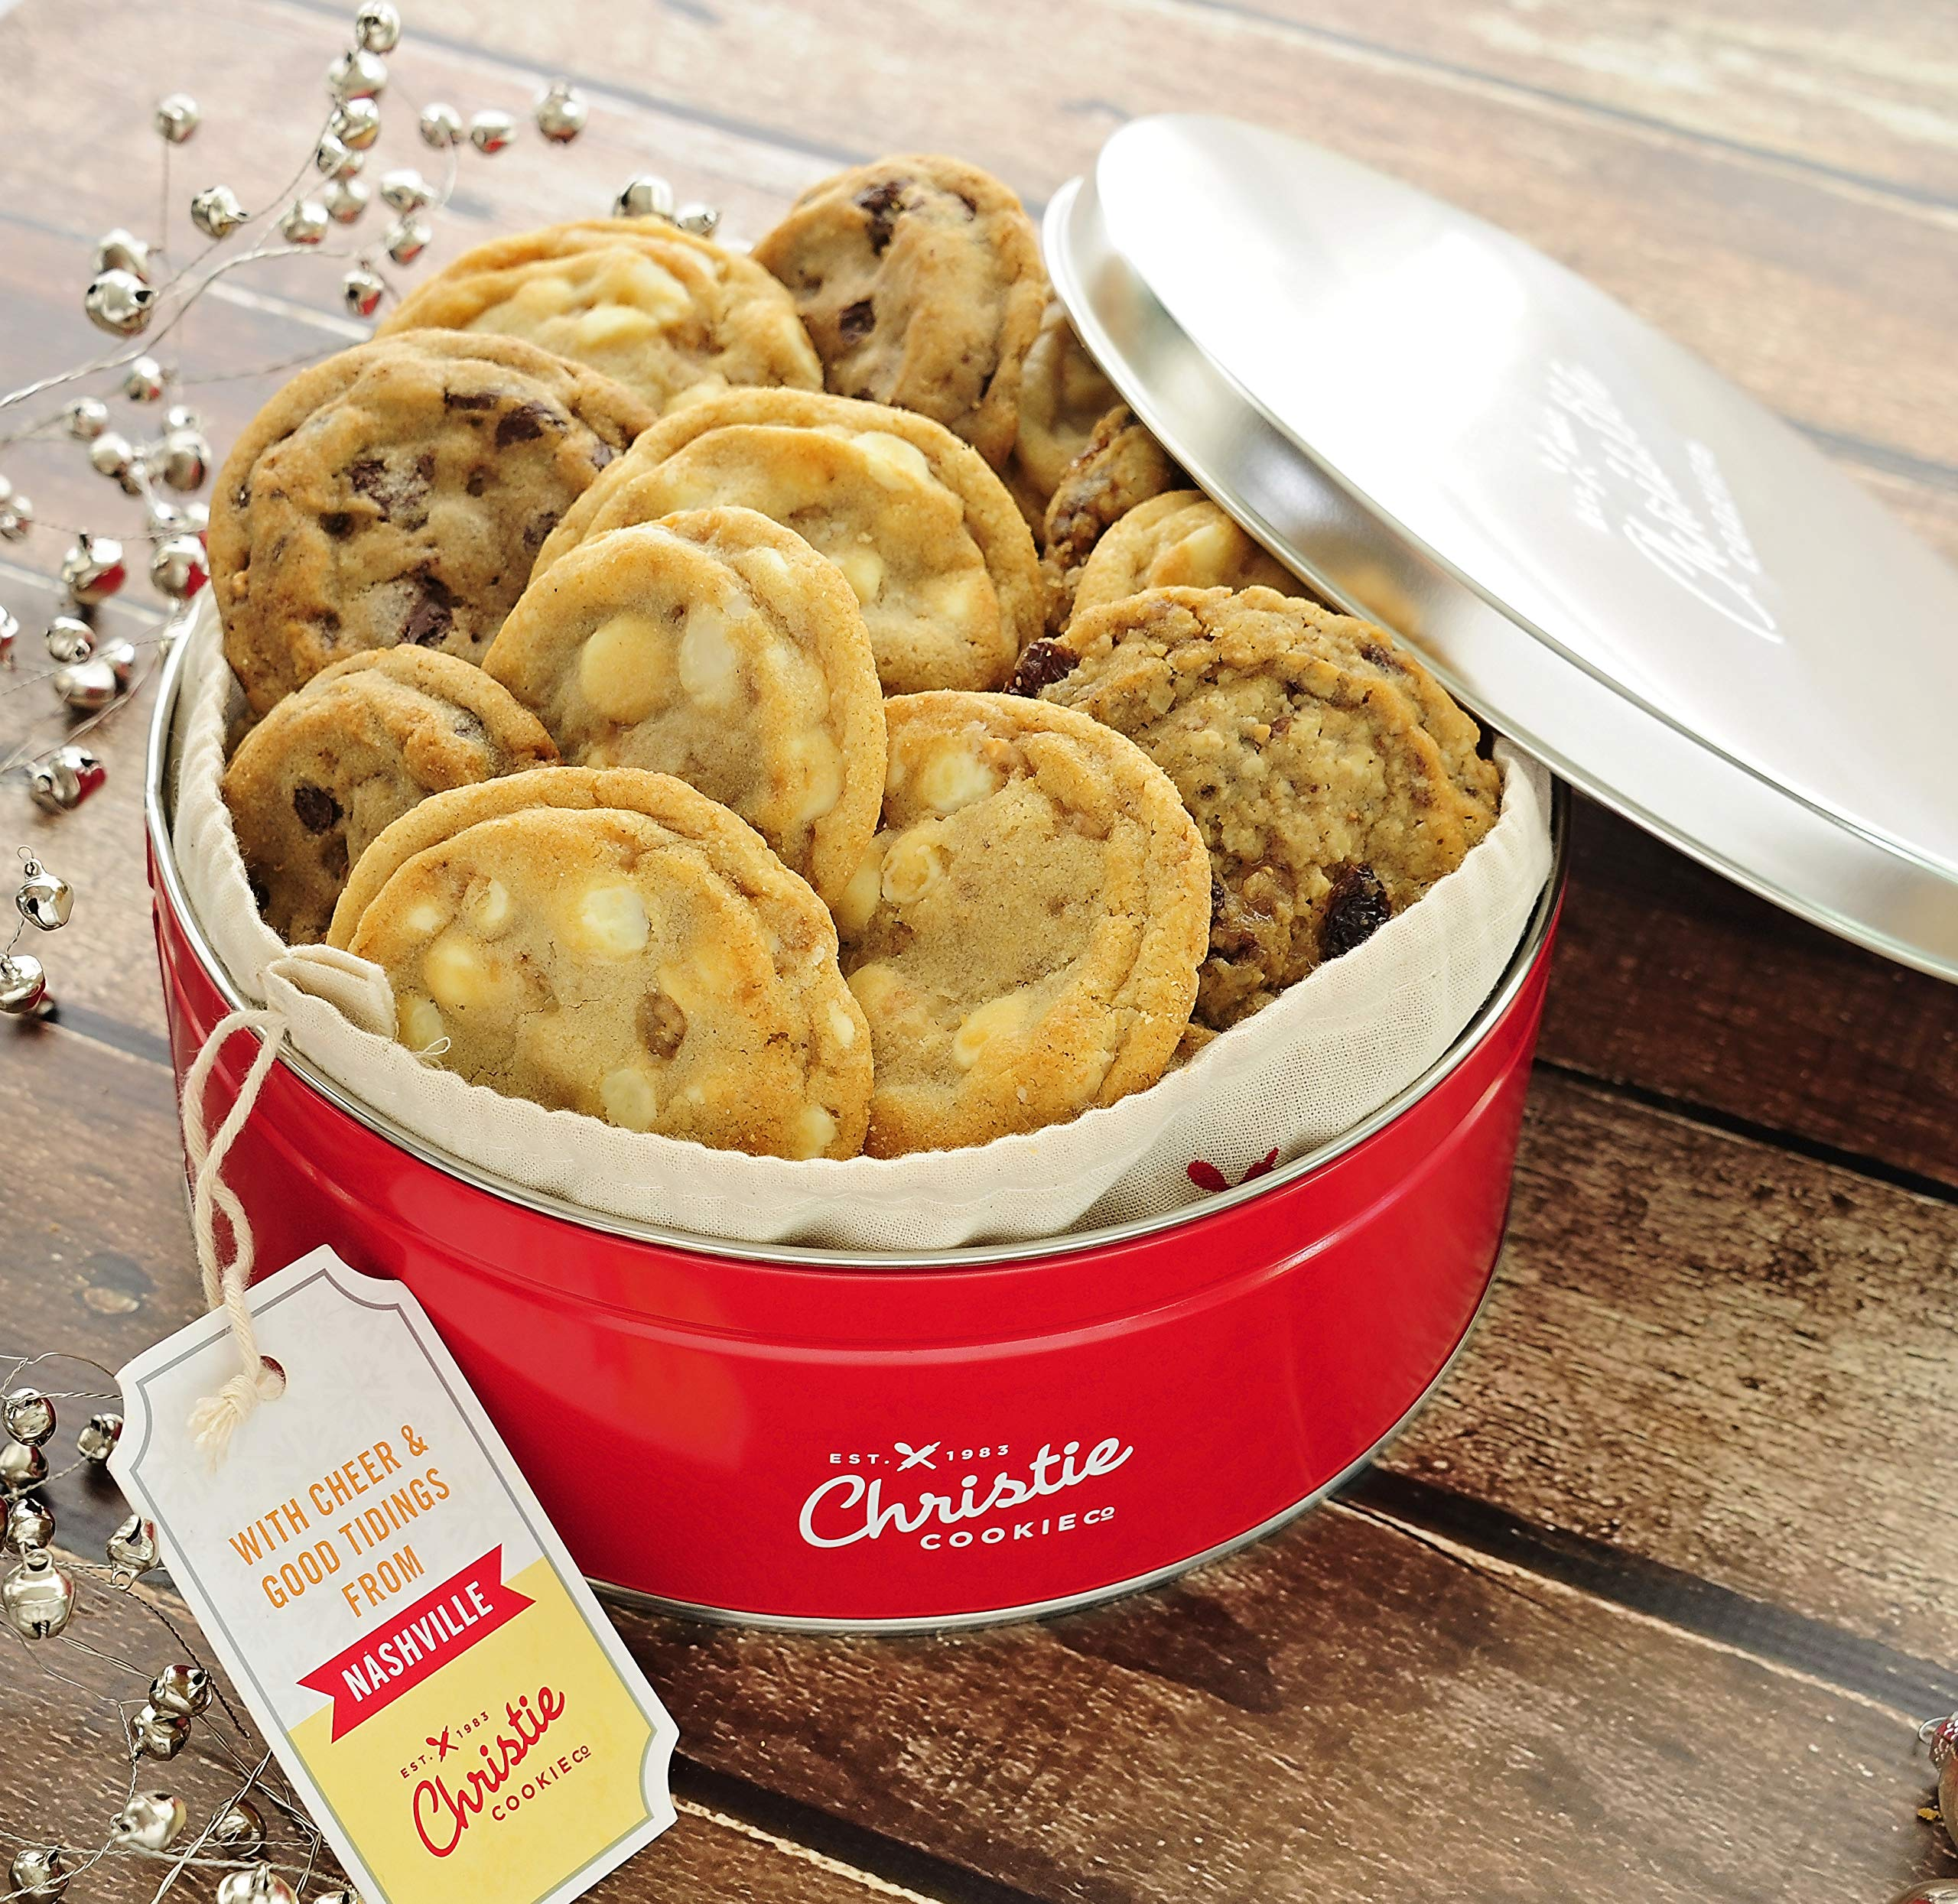 Christie Cookies, Gourmet Assorted Cookies, 18 Fresh-Baked Cookies in Red Tin, No Added Preservatives, 100% Real Butter, Holiday & Corporate Gift Tin, Birthday Gift Idea for Men & Women by Christie Cookie Co. (Image #1)